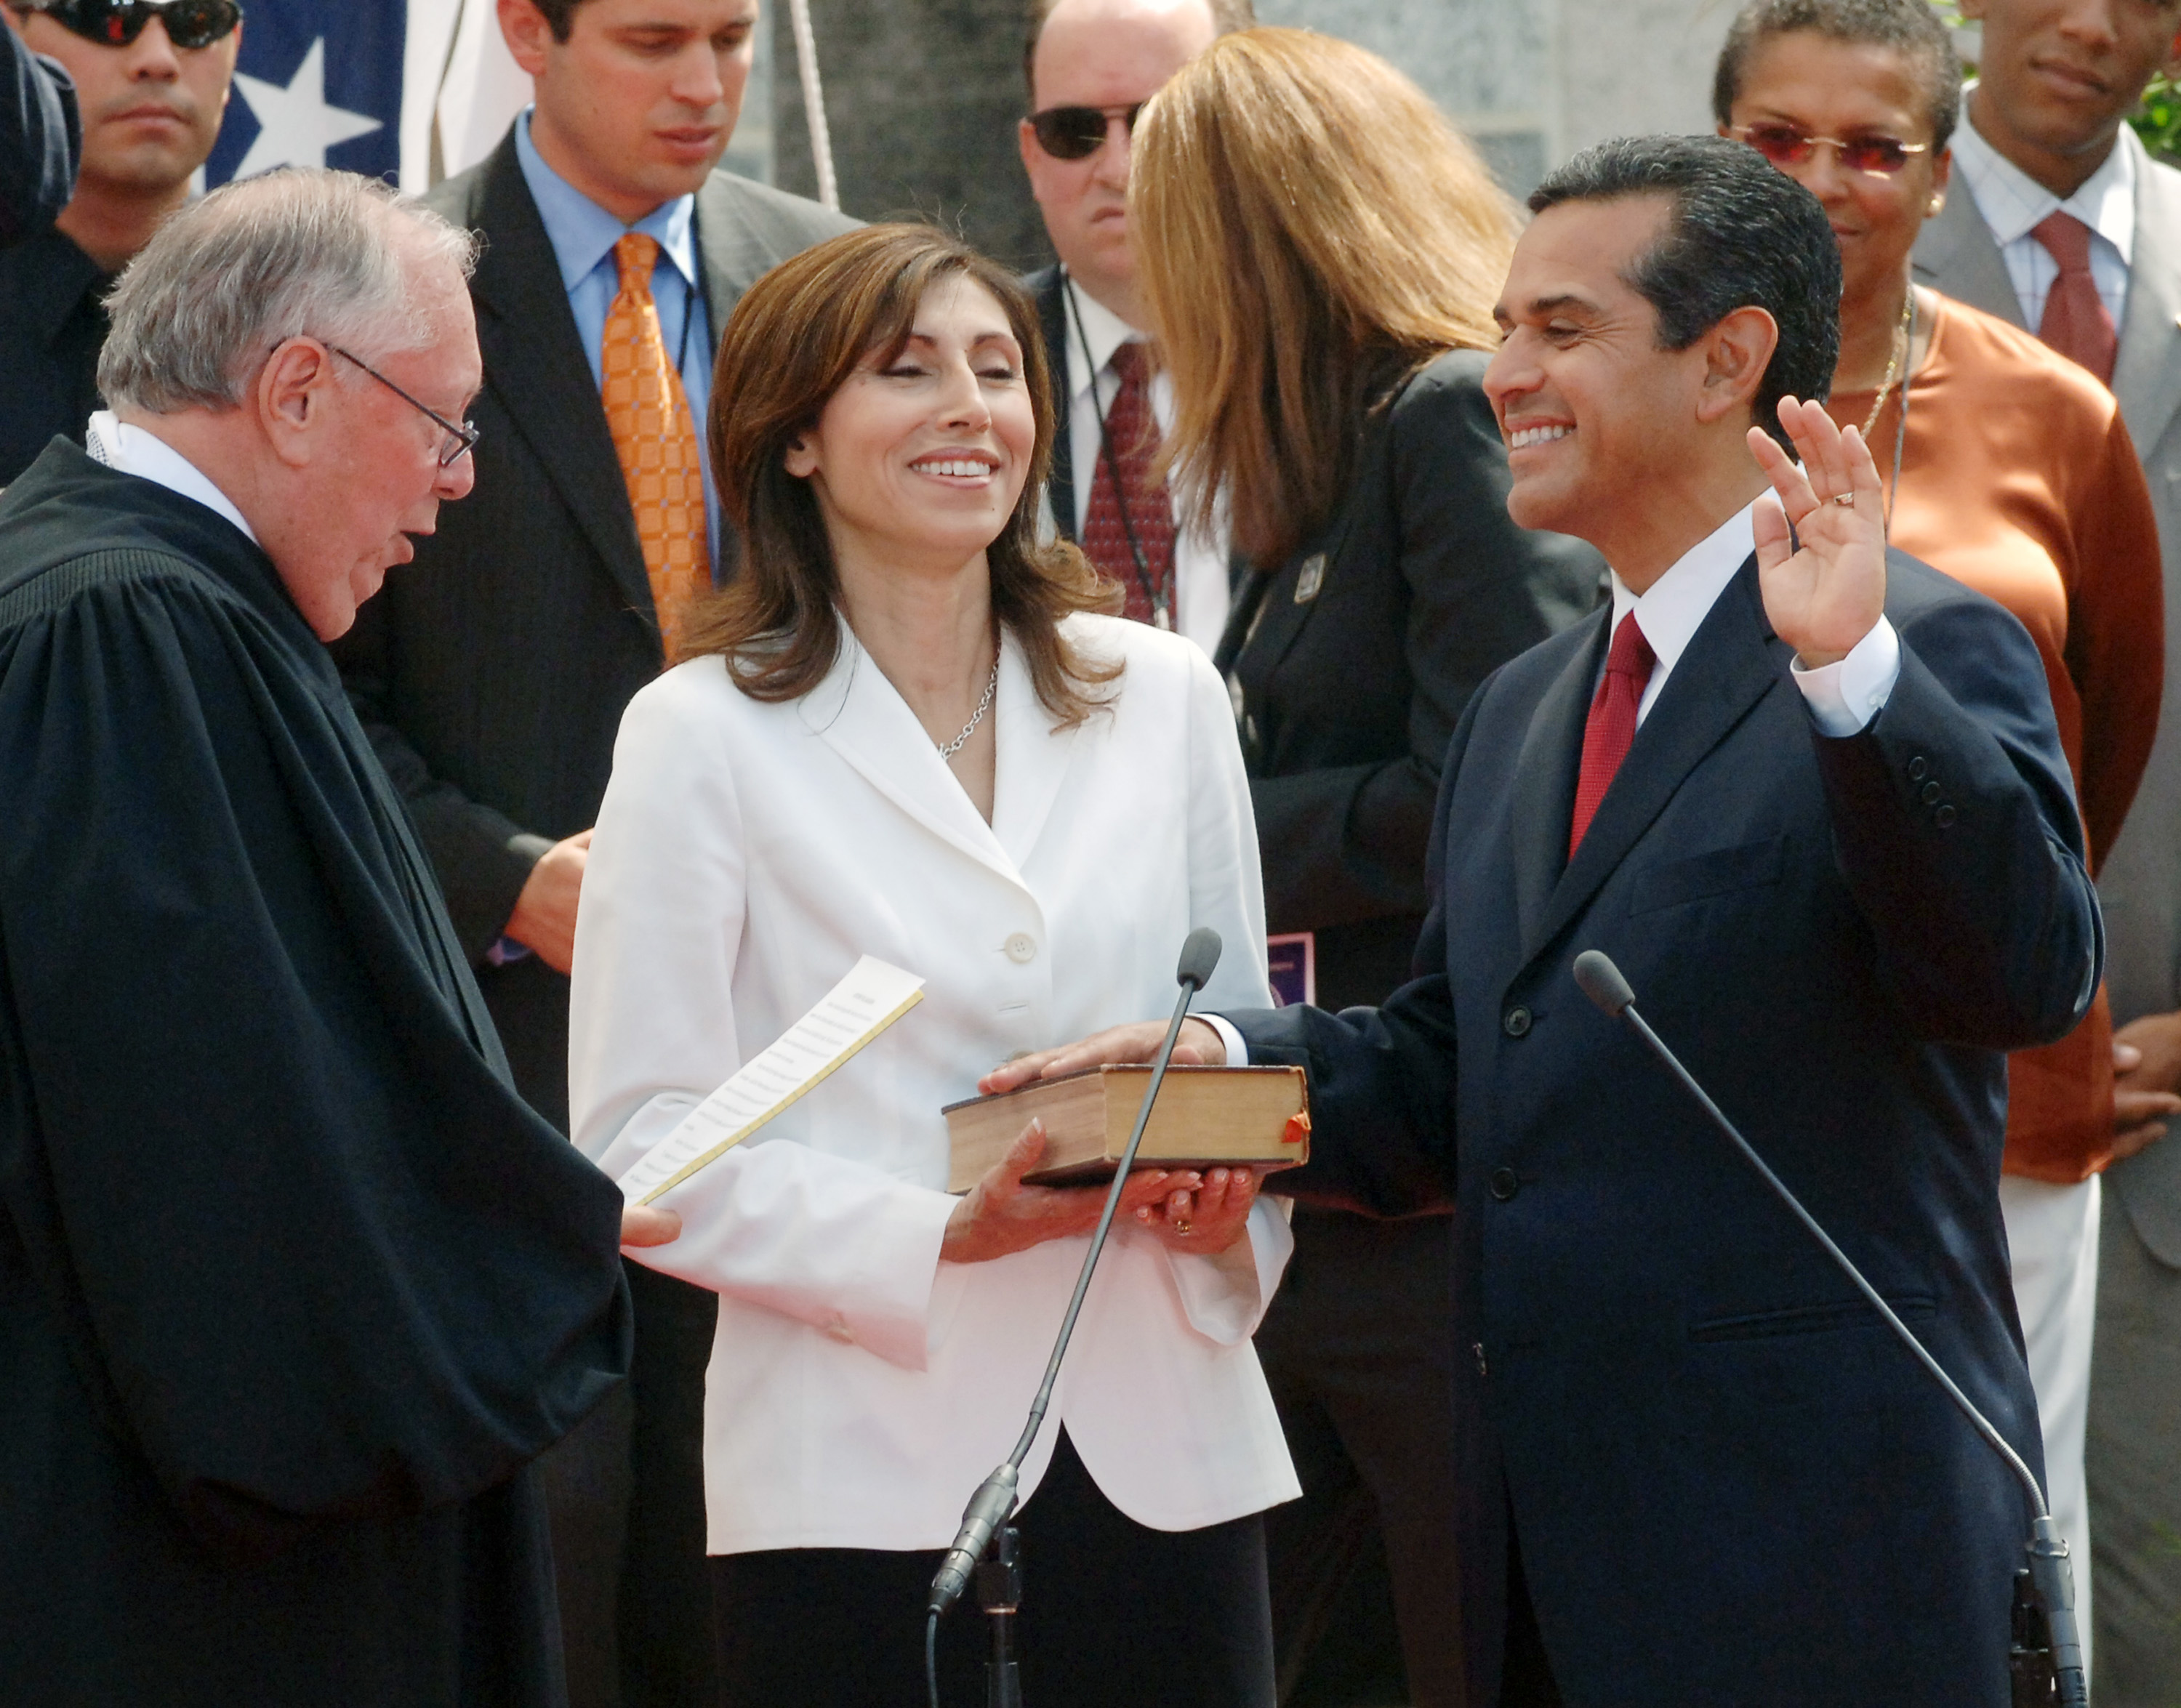 Judge Stephen Reinhardt swears in Los Angeles Mayor Antonio Villaraigosa on July 1, 2005. REUTERS/Jim Ruymen